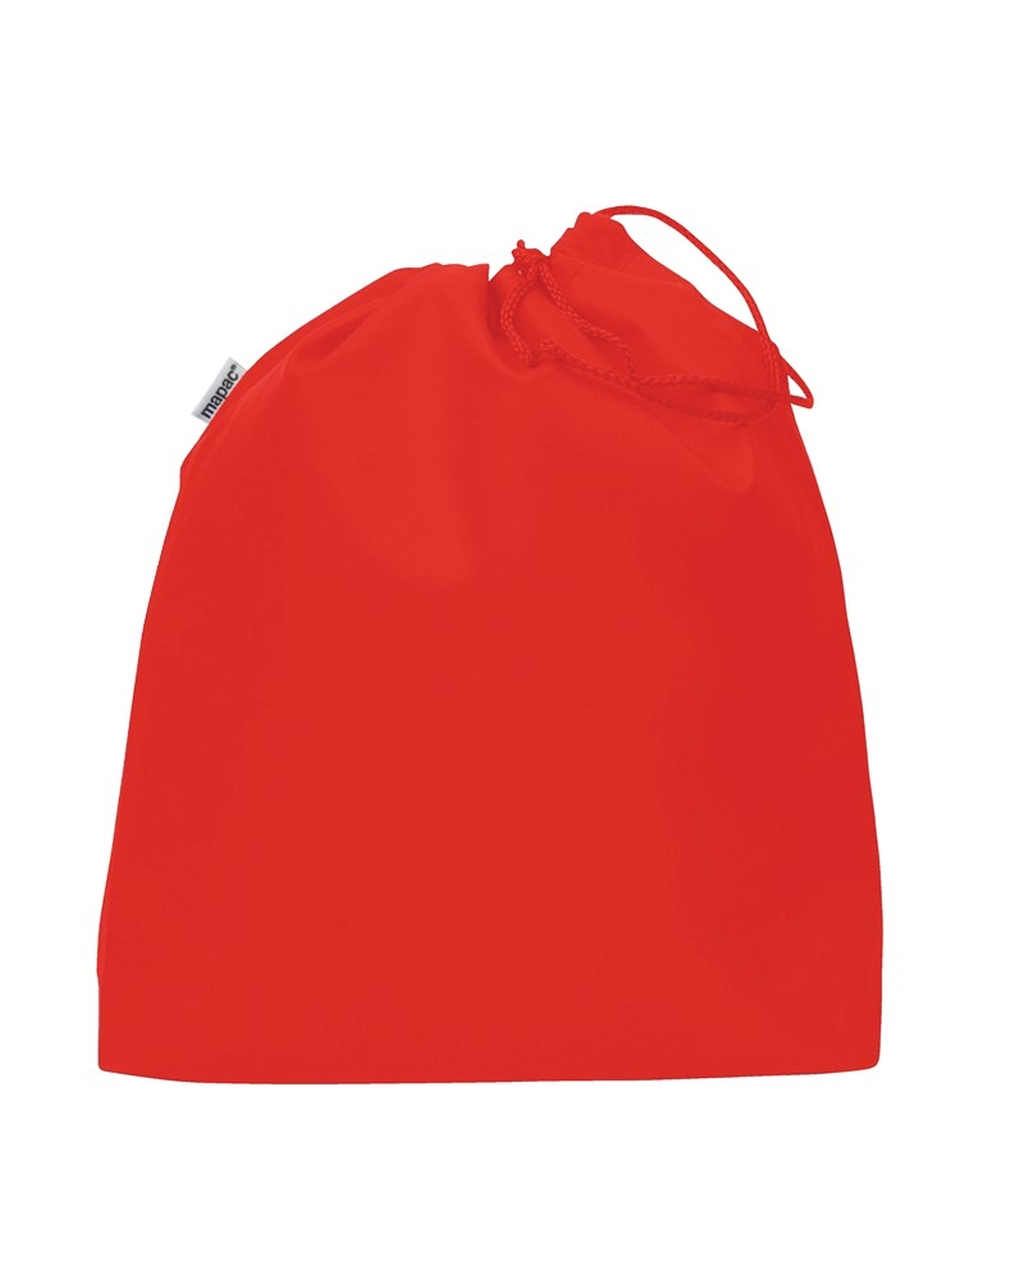 Water Resistant Back Bag 350 x 370mm - Red